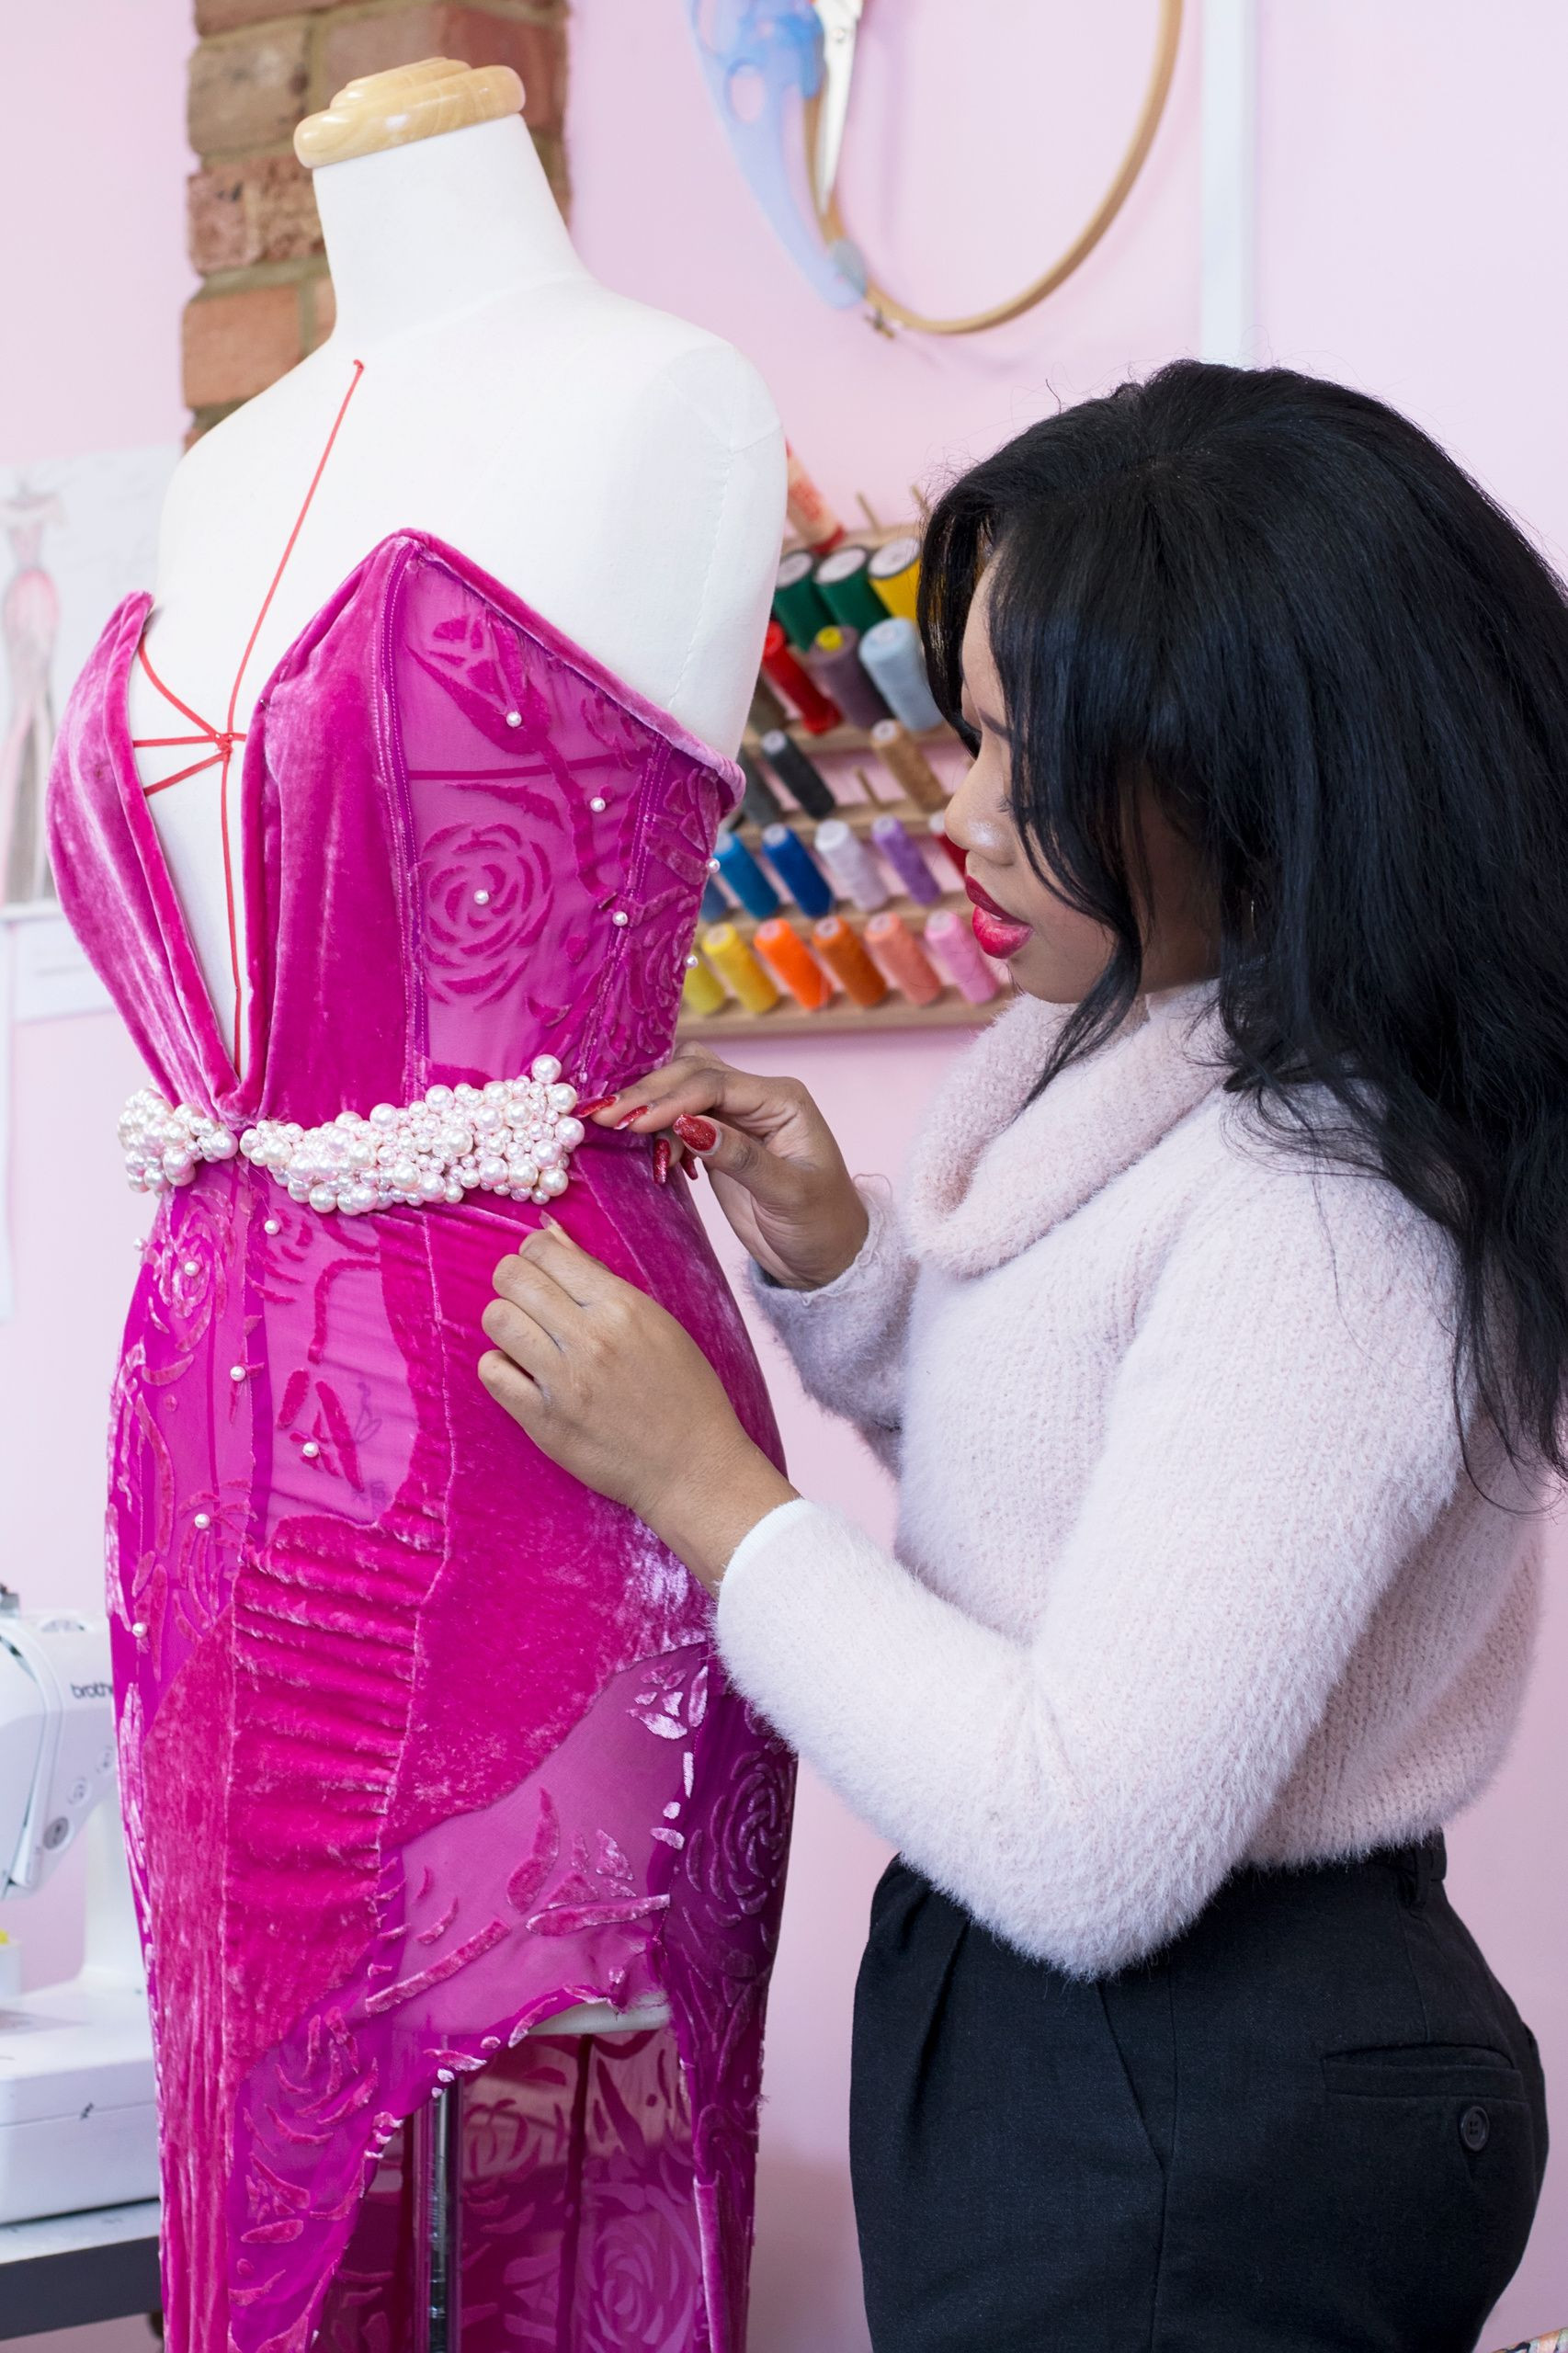 Couture Sewing Techniques Course (Intermediate-Advanced) by DUMEBI Couture Fashion - crafts in London